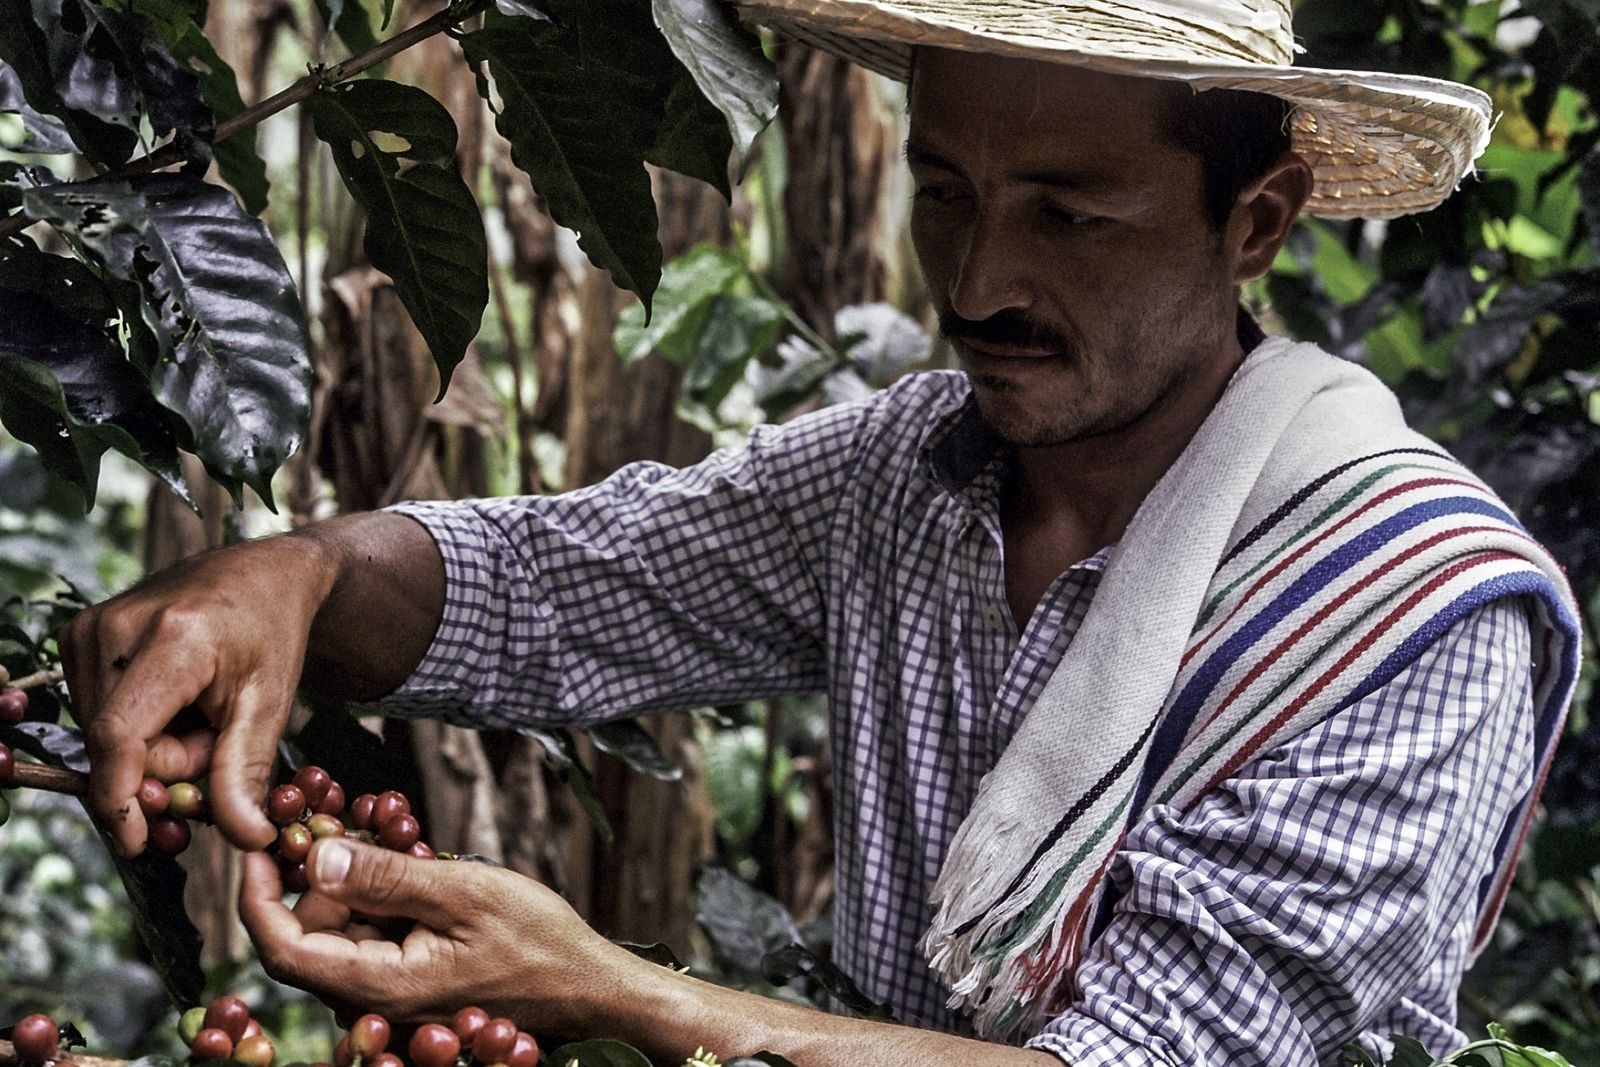 Caquetá farmer Don Fernando continued to grow coffee despite living in a region ravaged by conflict. ...